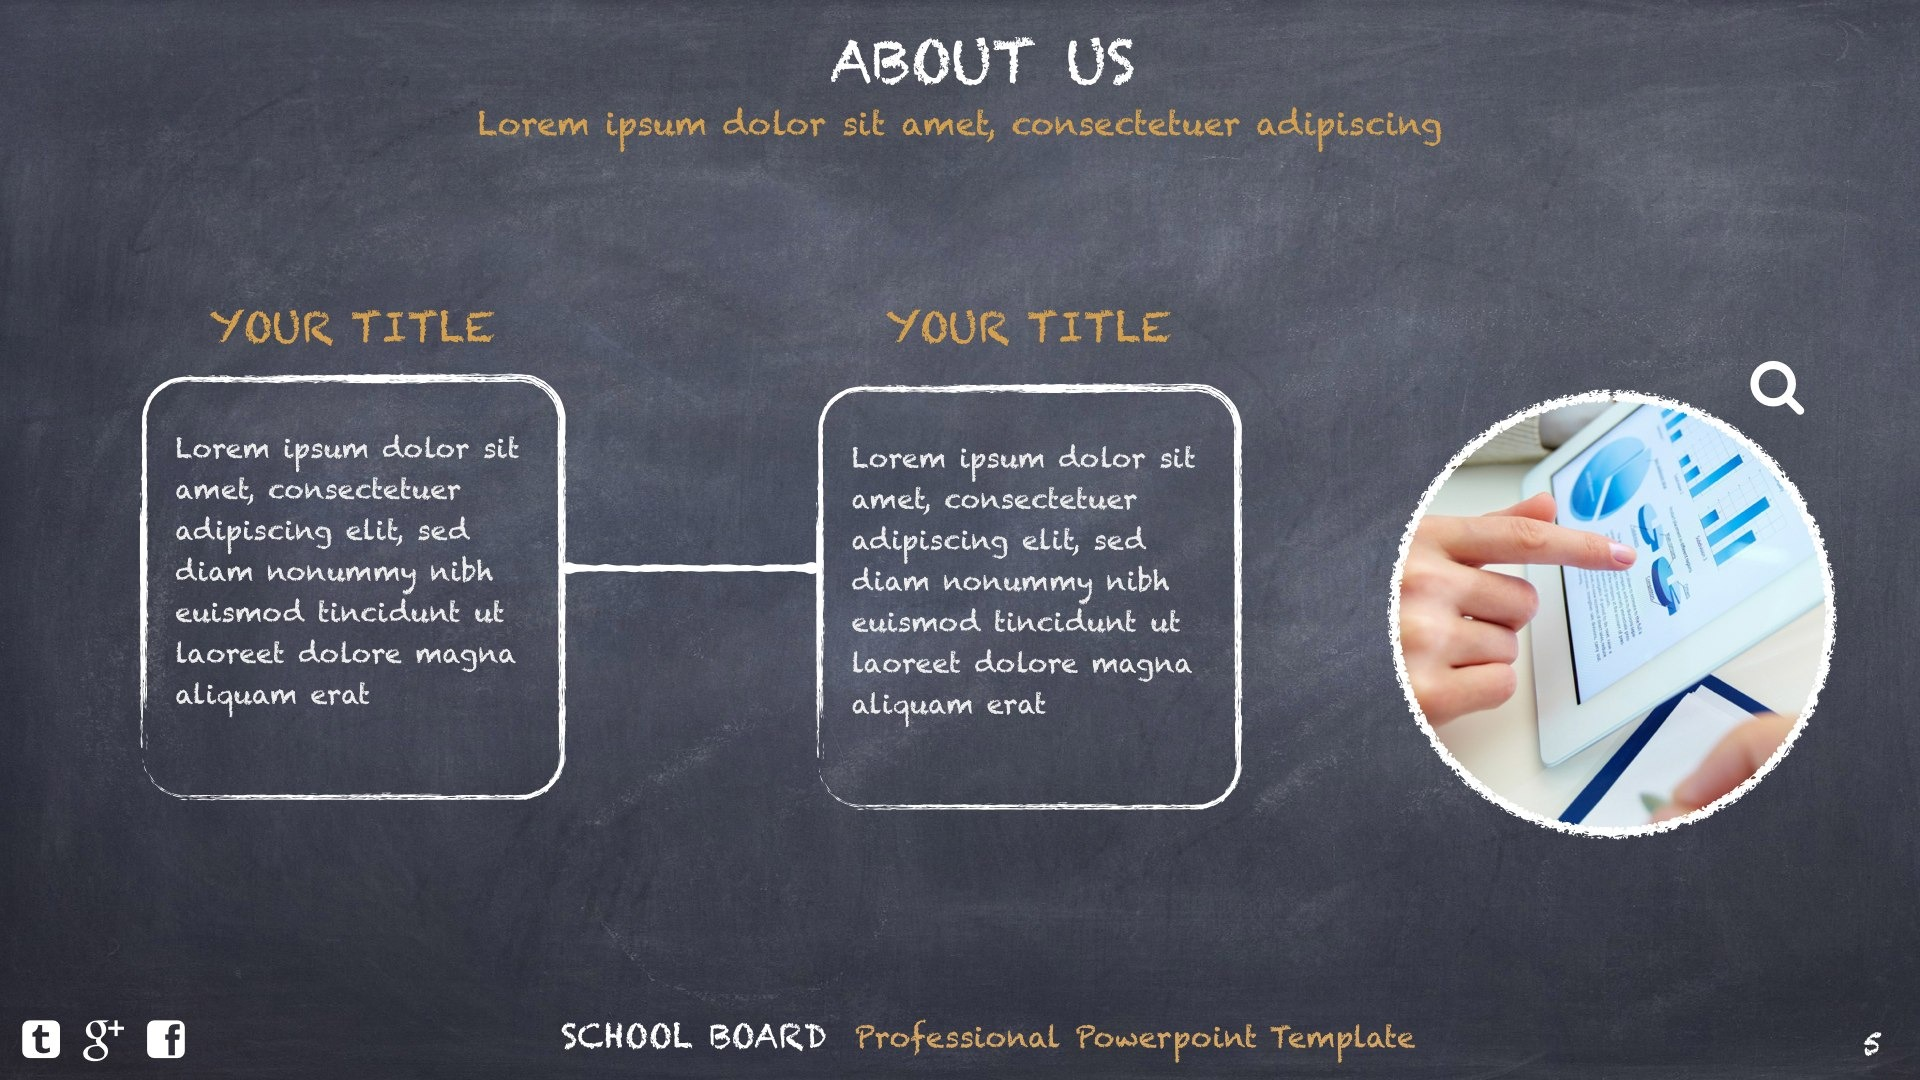 School Board Creative Powerpoint Template By Design47 Graphicriver